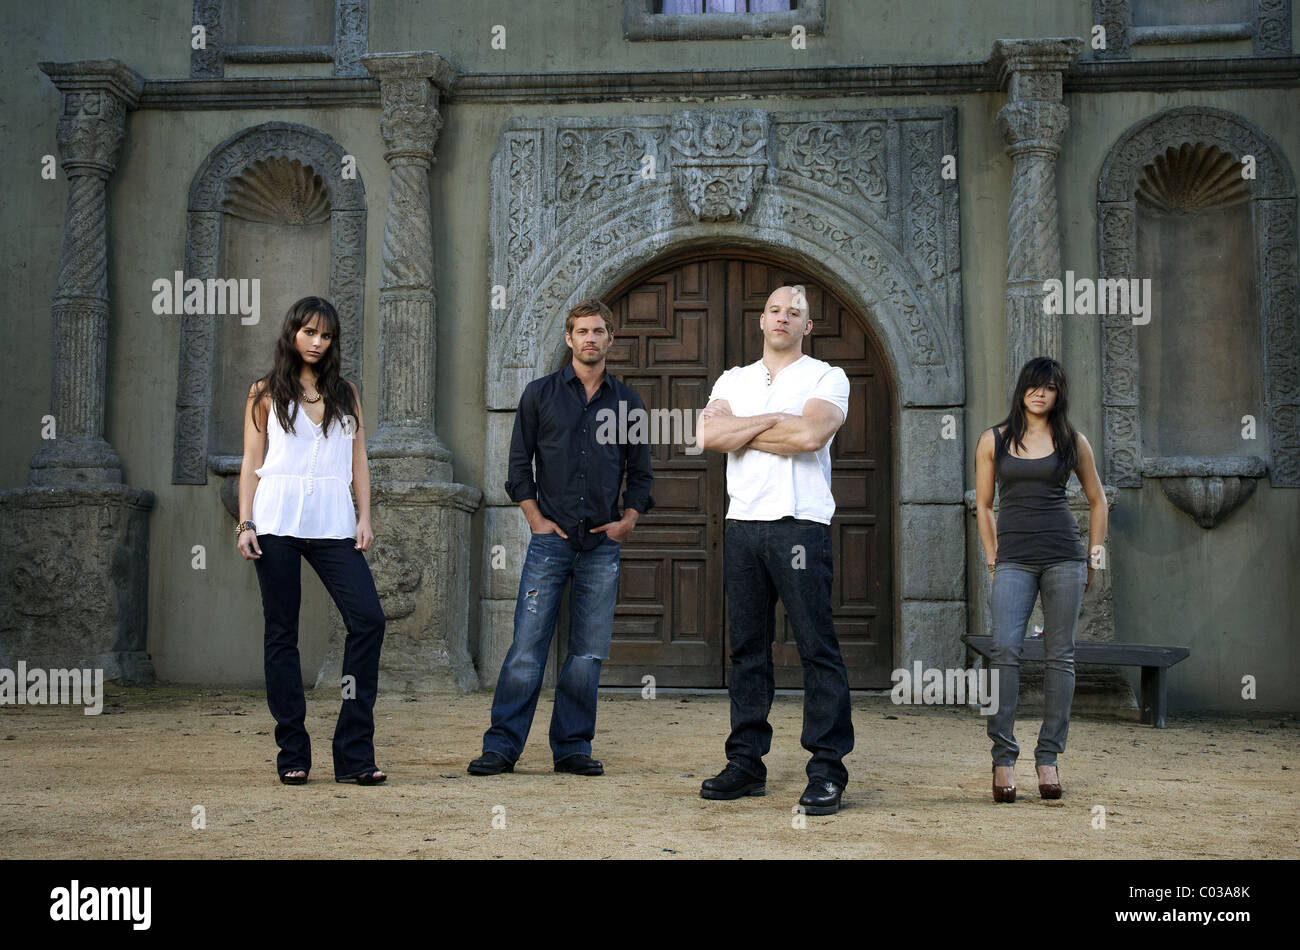 b851224a35 JORDANA BREWSTER PAUL WALKER VIN DIESEL   MICHELLE RODRIGUEZ FAST   FURIOUS   THE FAST AND THE FURIOUS 4 (2009)